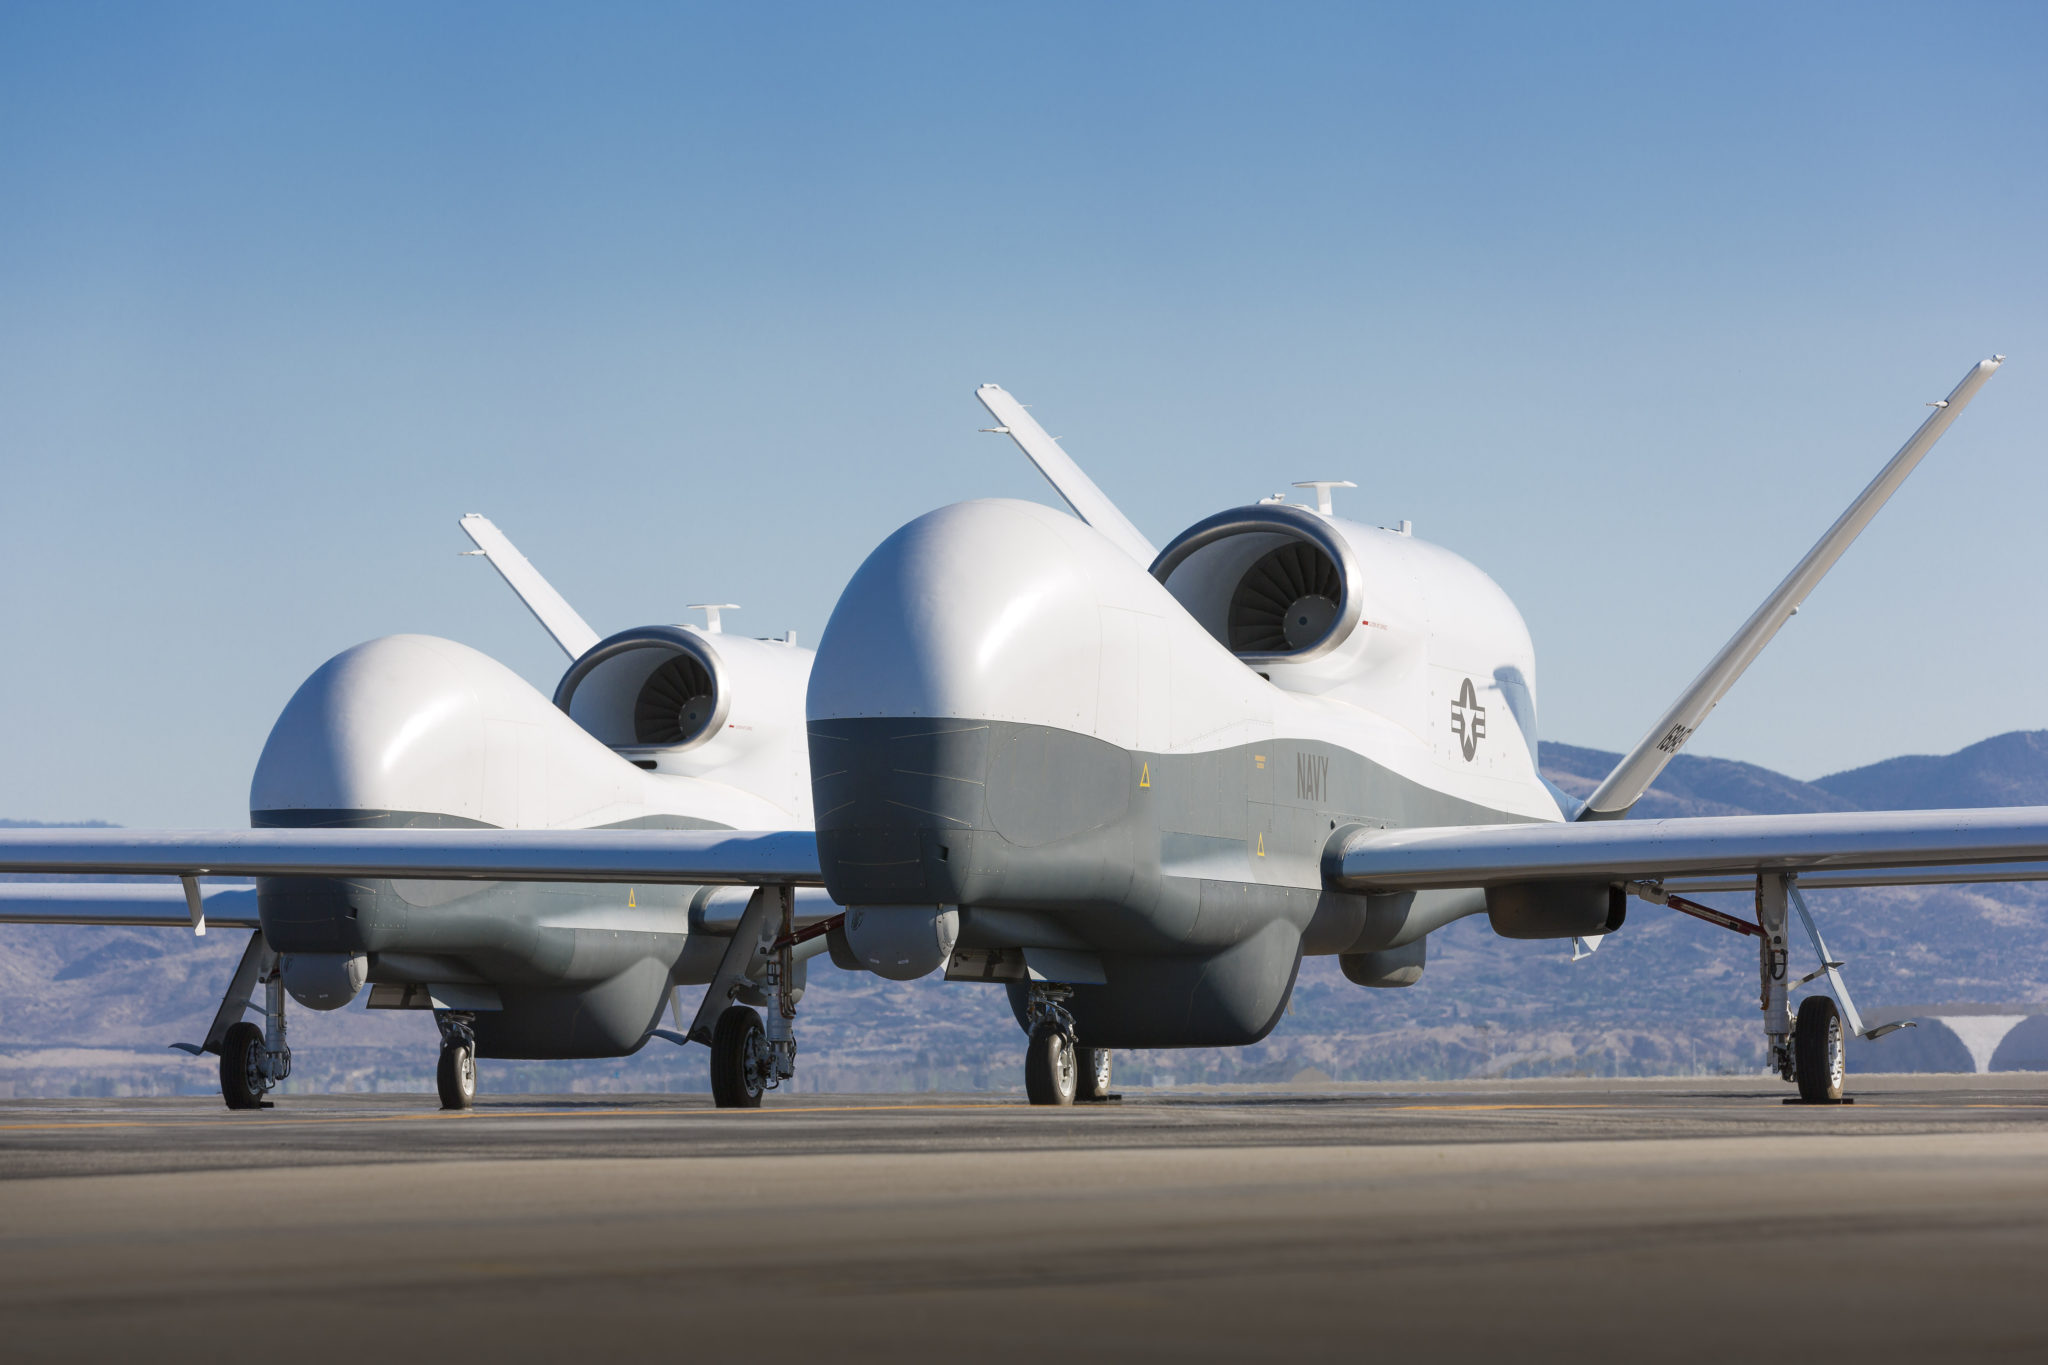 Two Northrop Grumman MQ-4C Triton unmanned aerial vehicles are seen on the tarmac at a Northrop Grumman test facility in Palmdale, Calif. Triton is undergoing flight testing as an unmanned maritime surveillance vehicle